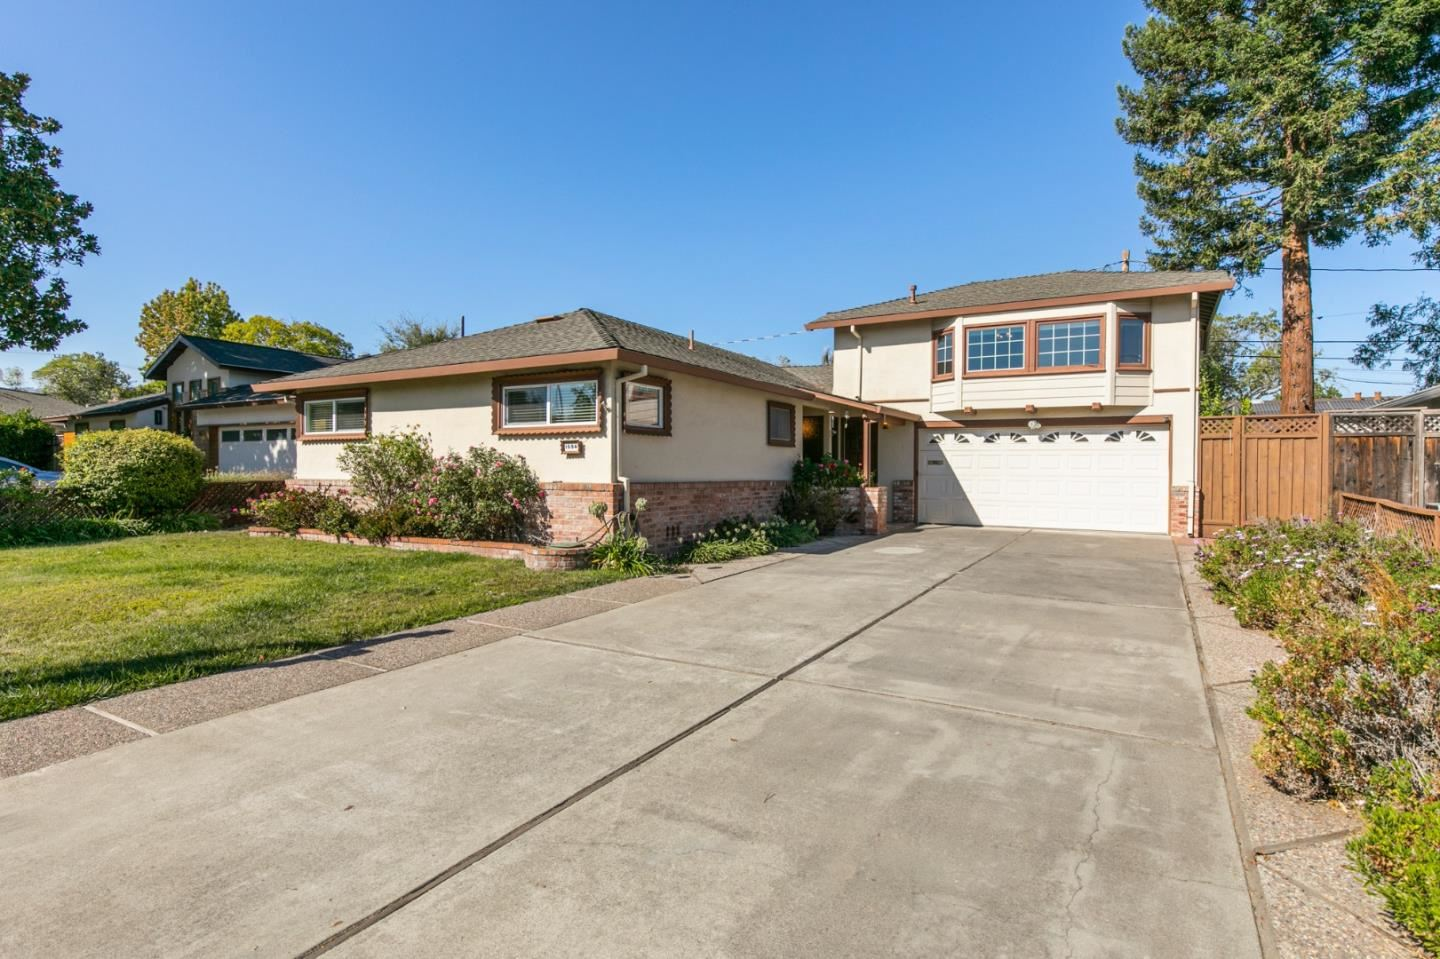 Photo for 1684 Lee Drive, MOUNTAIN VIEW, CA 94040 (MLS # ML81861652)